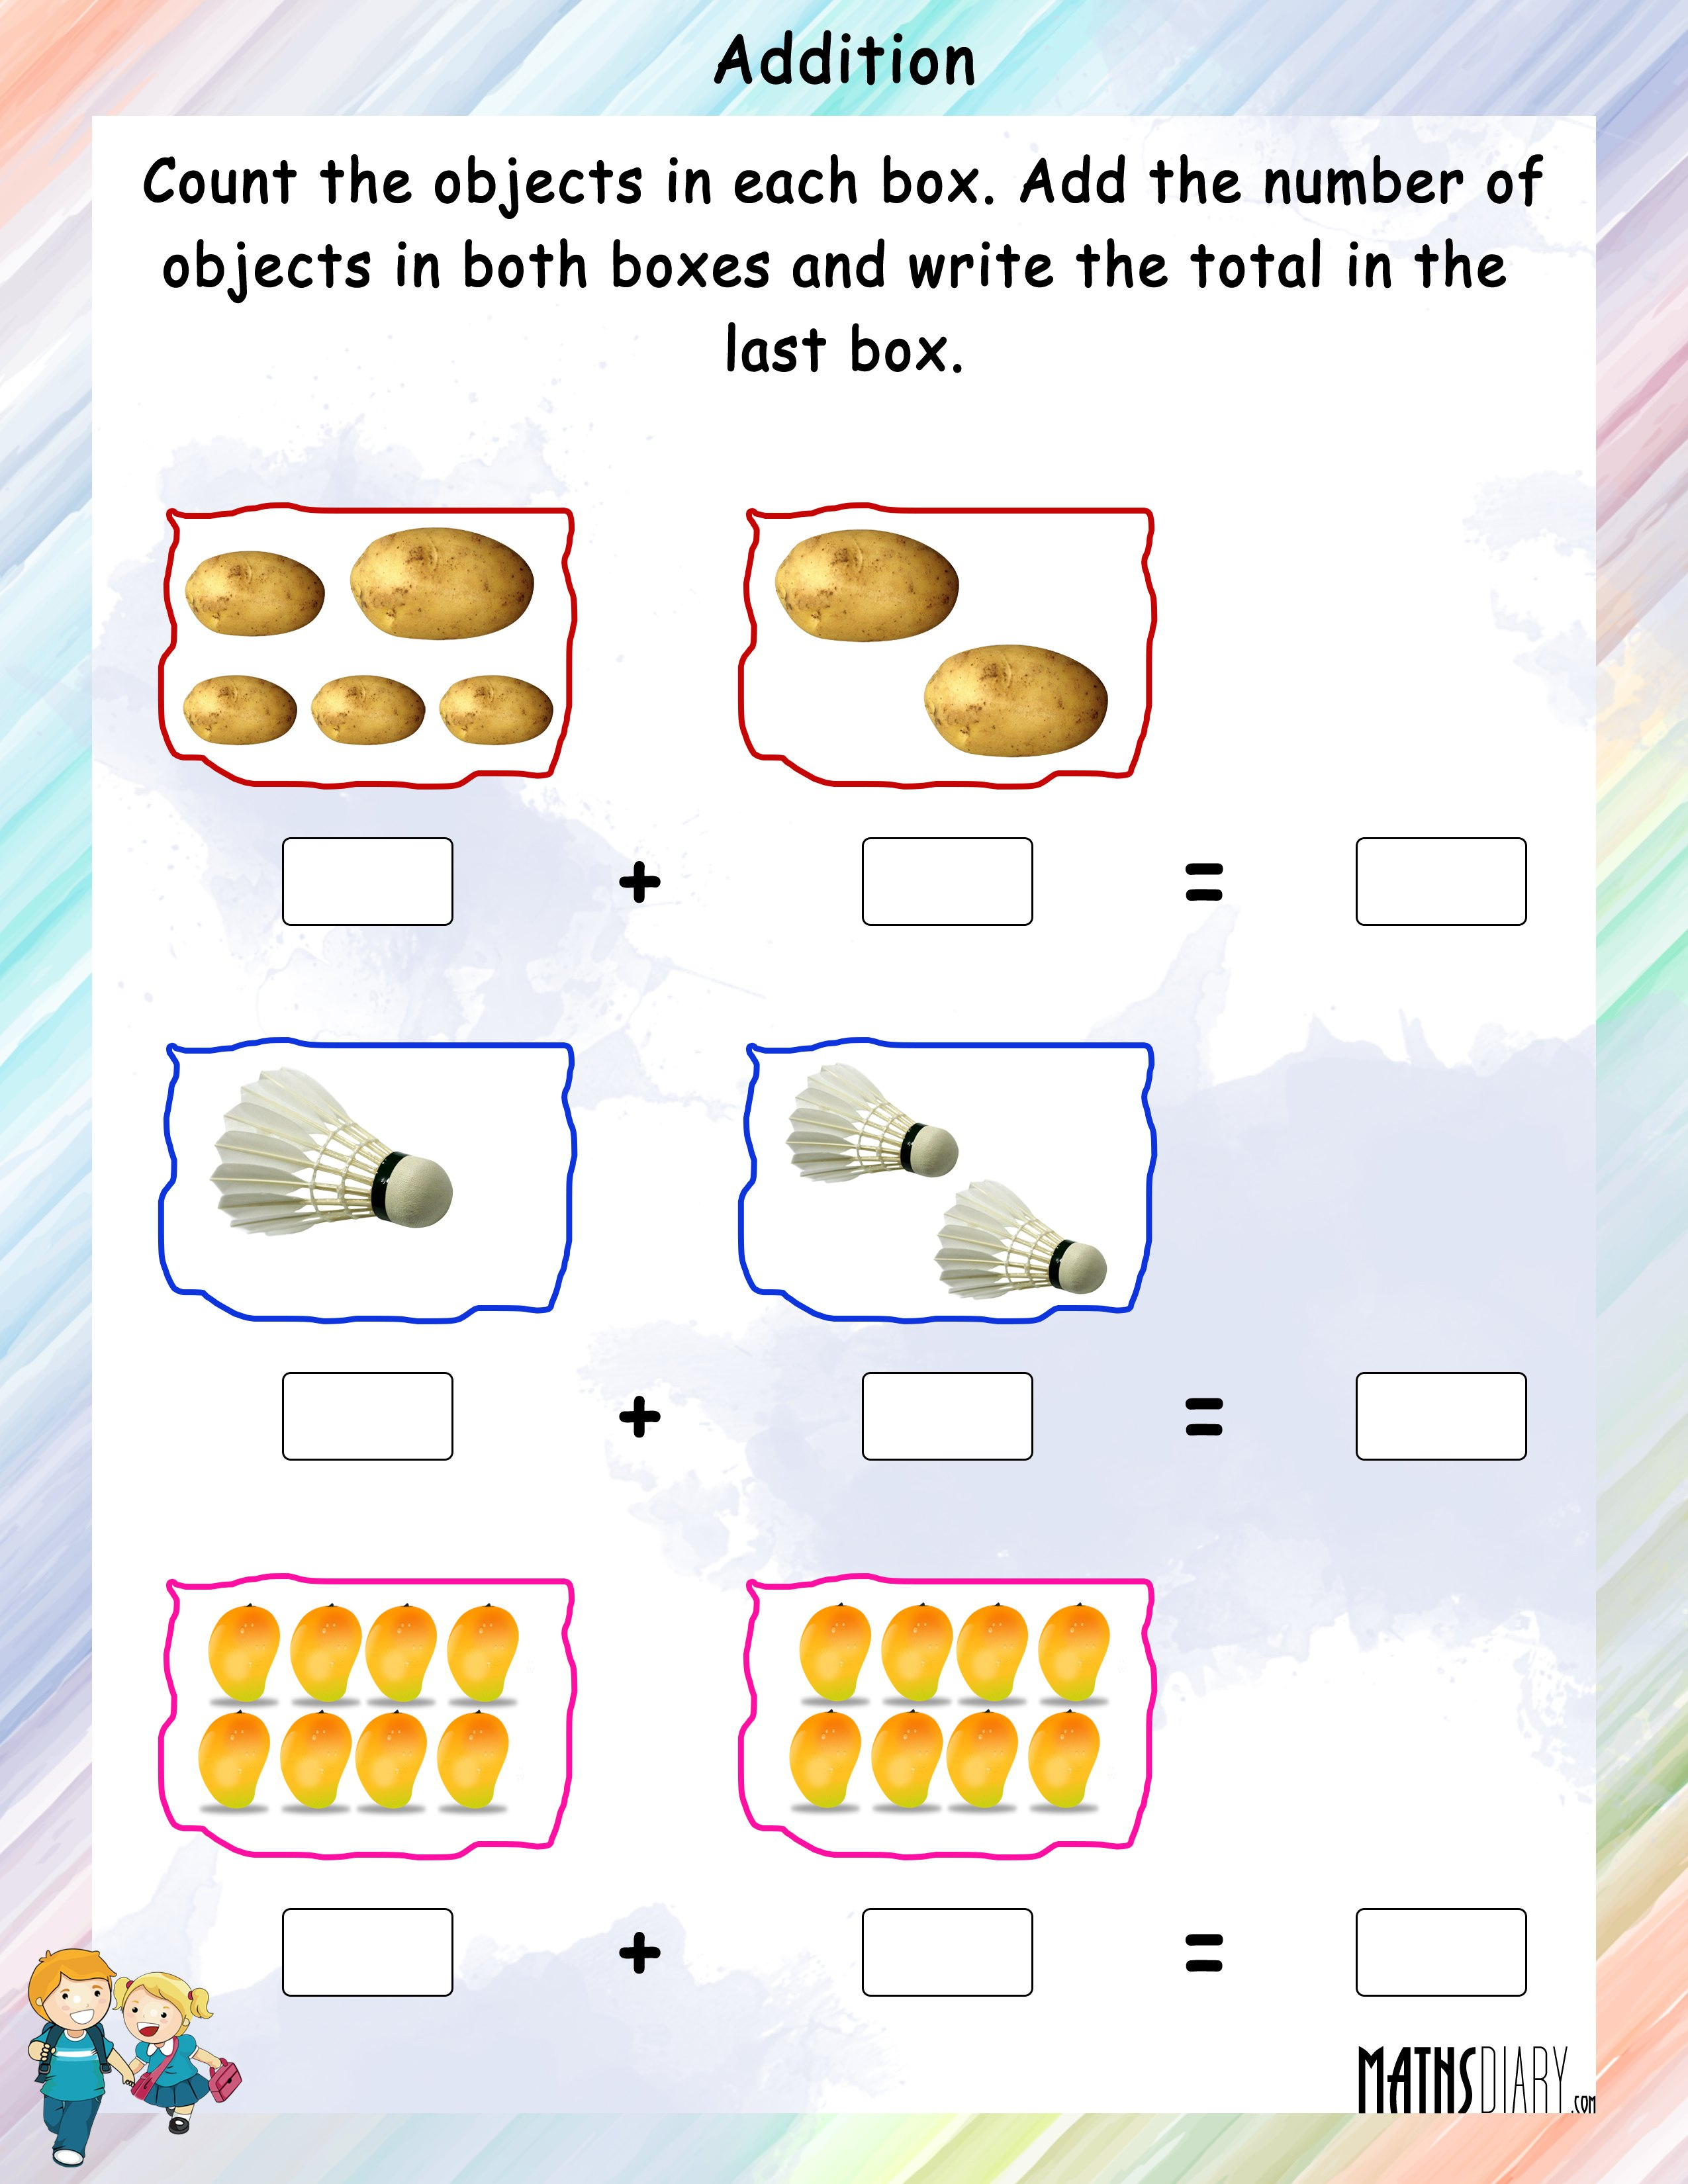 Addition Math Worksheets For Kindergarten Using Objects